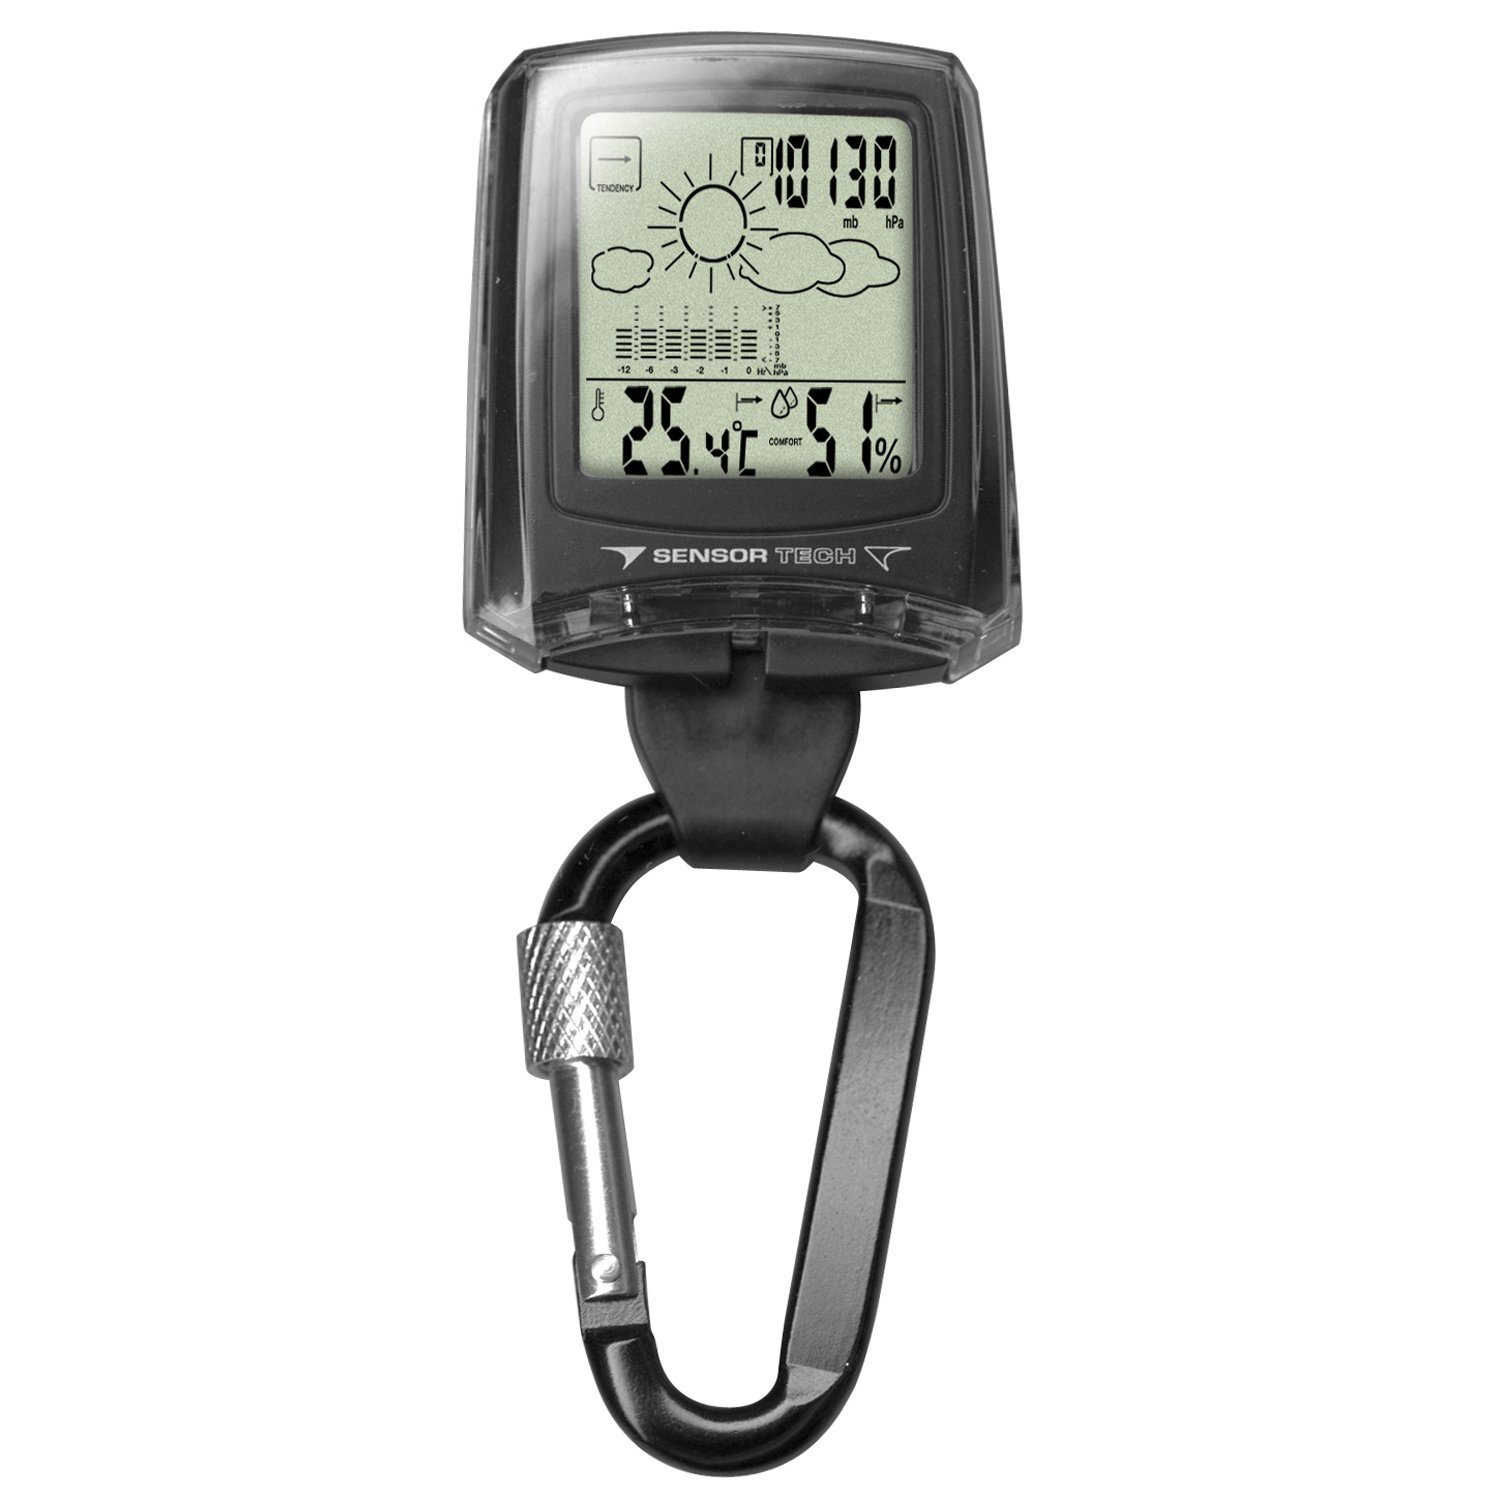 Dakota Weather Station Clip Watch, Company Waterproof Altimeter Black Input Marine 35mm MHS126 Sports Microlight... by